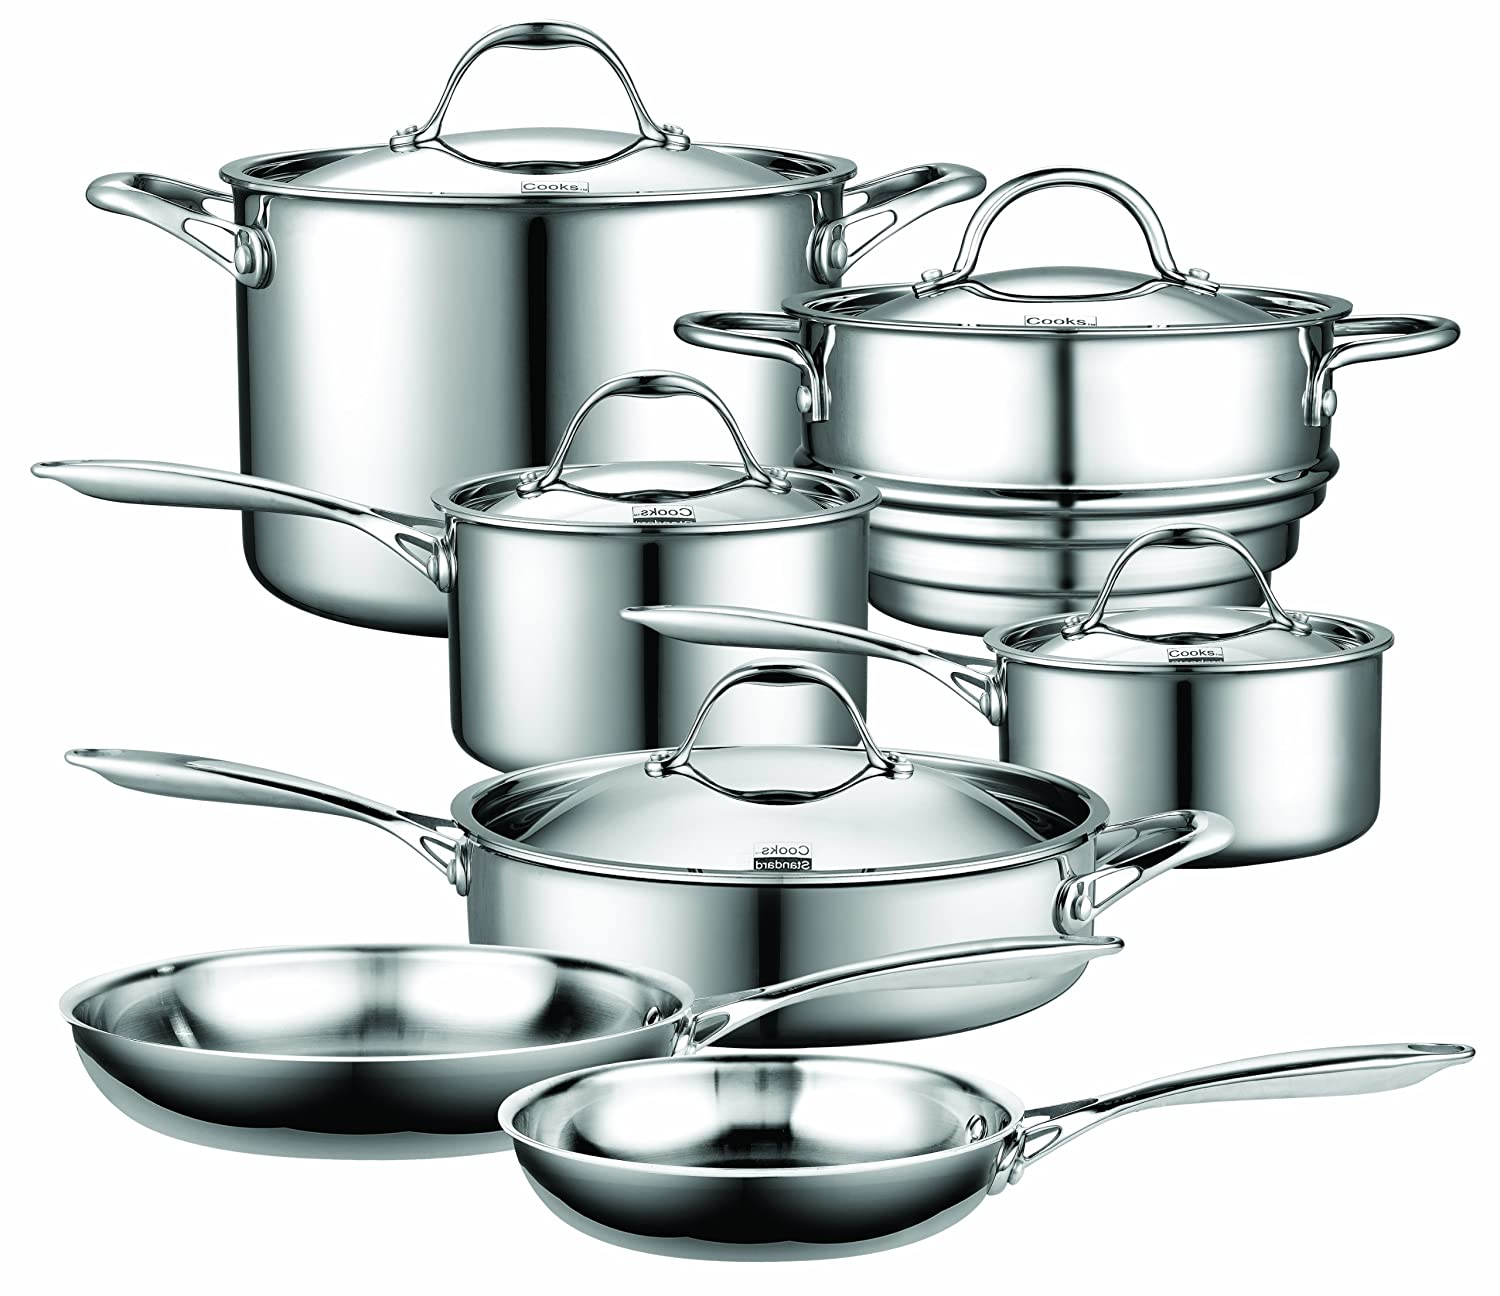 All clad stainless steel cookware sets - Amazon Com Cooks Standard Nc 00232 12 Piece Multi Ply Clad Stainless Steel Cookware Set Kitchenaid Stainless Cookware Set Kitchen Dining